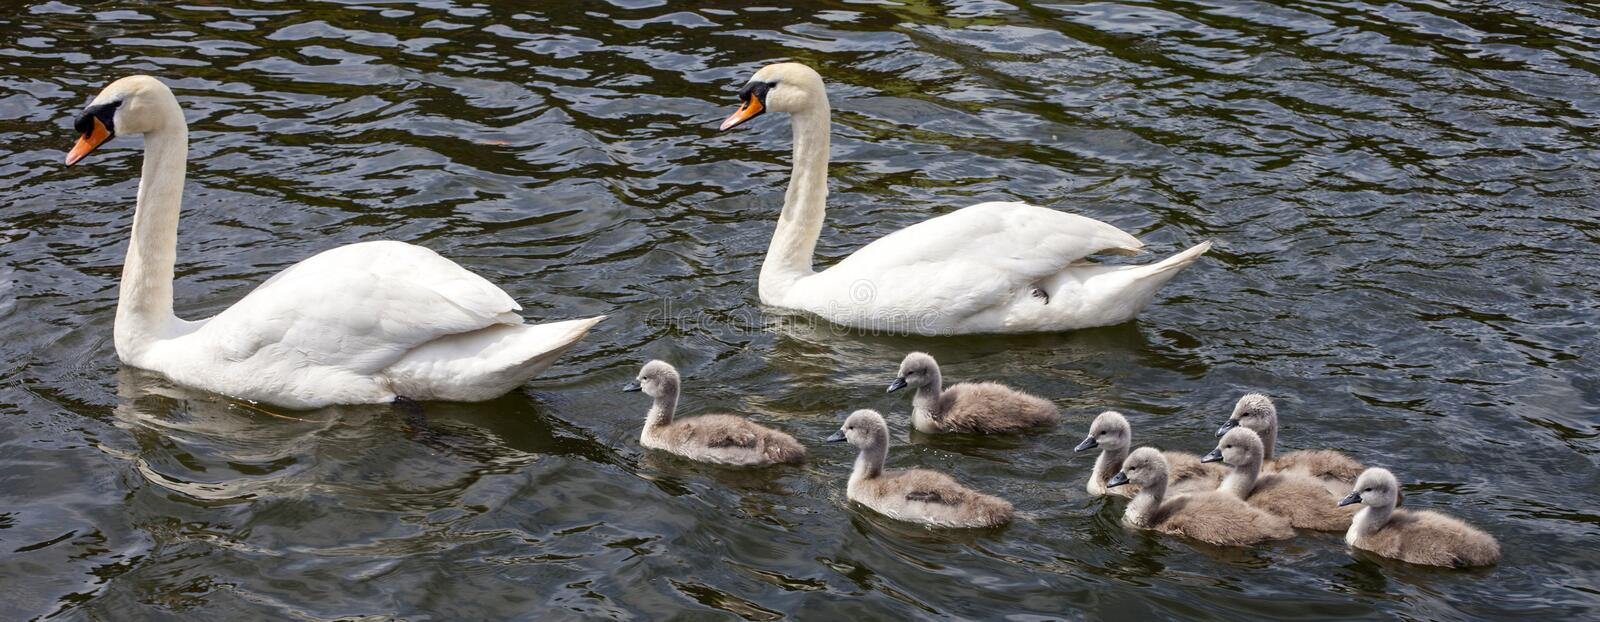 Swans with their Cygnets. Two swans swimming with their Cygnets stock image